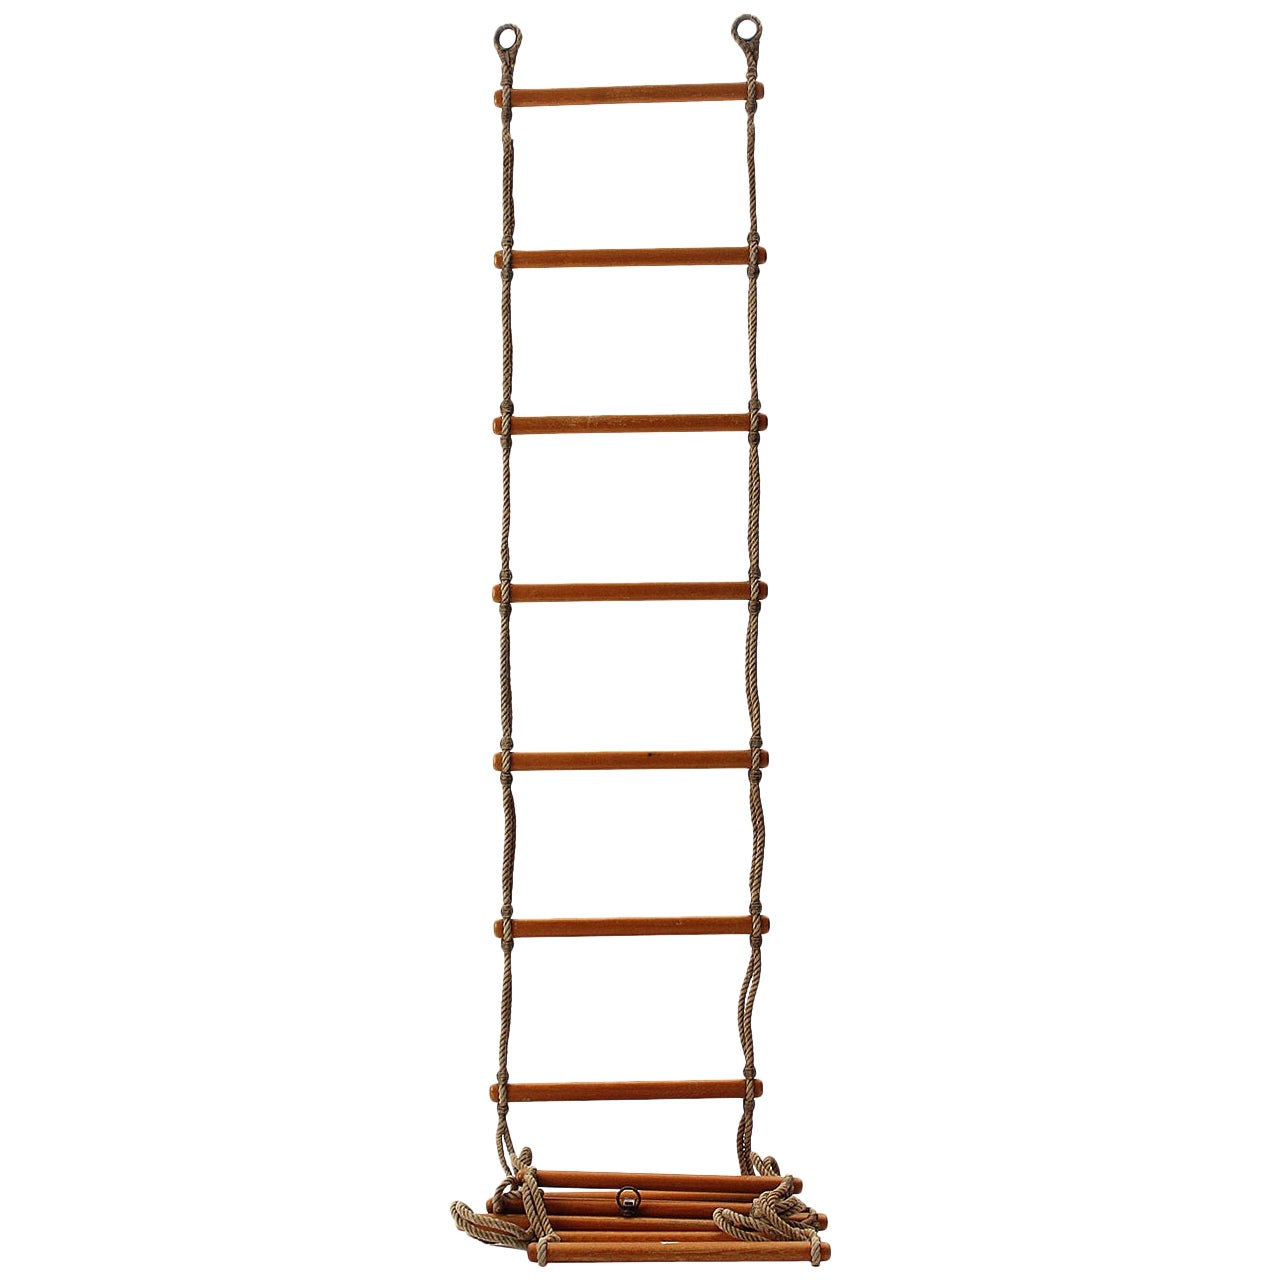 Rope and Rung Ladder